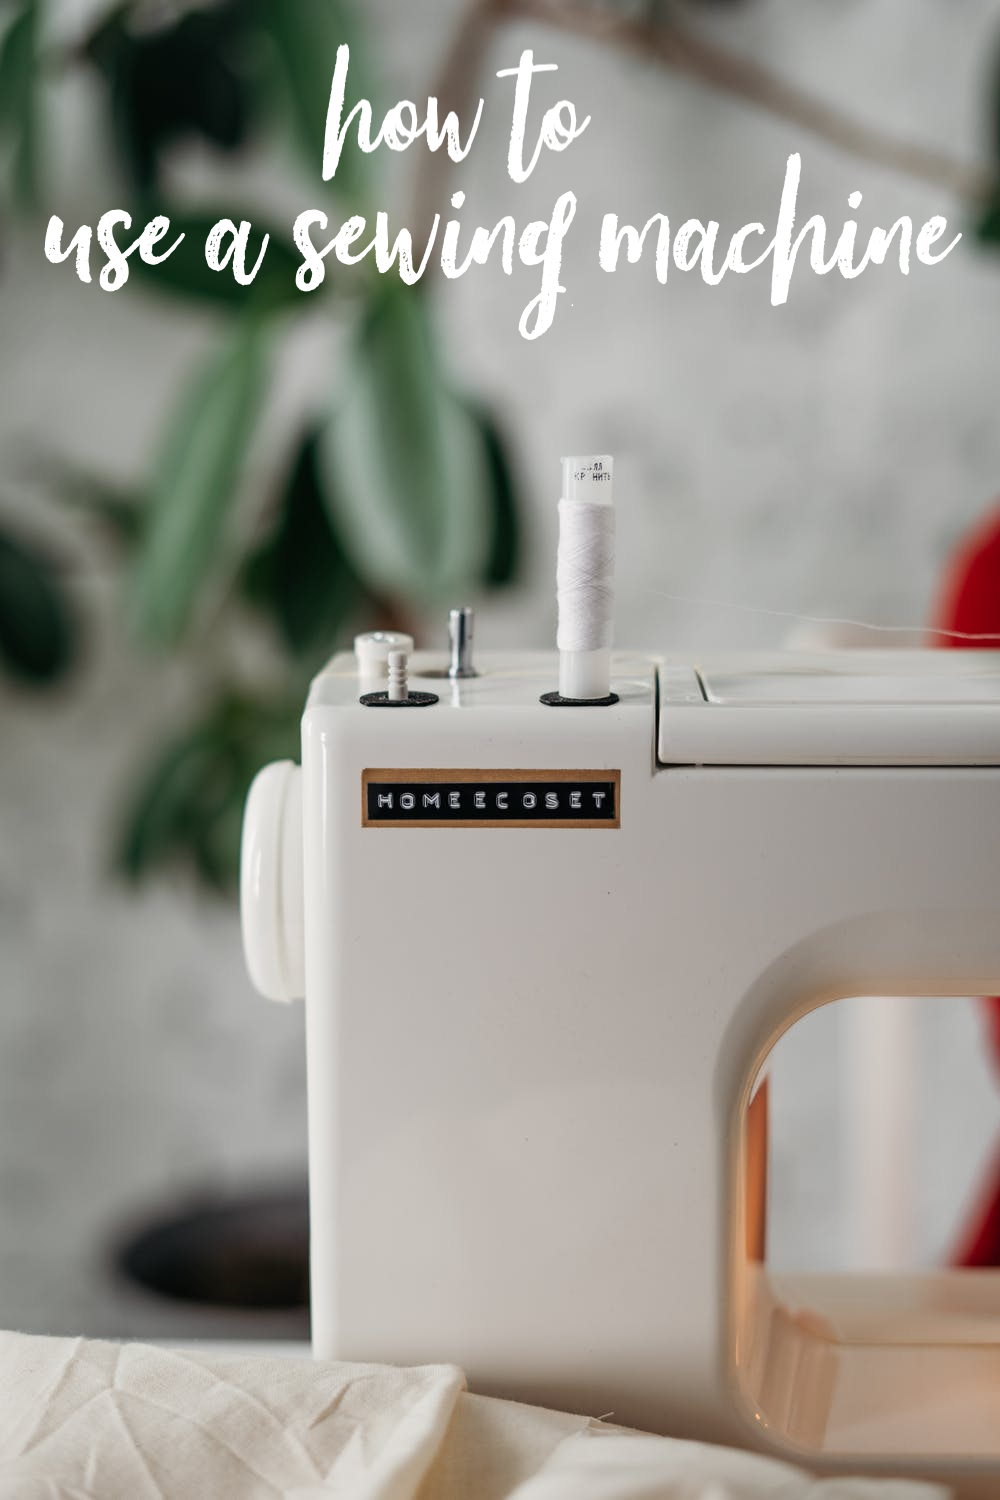 How to Use a Sewing Machine: Learn how to use your sewing machine from threading to winding bobbin, sewing, backstitching, and more. #sew #sewing